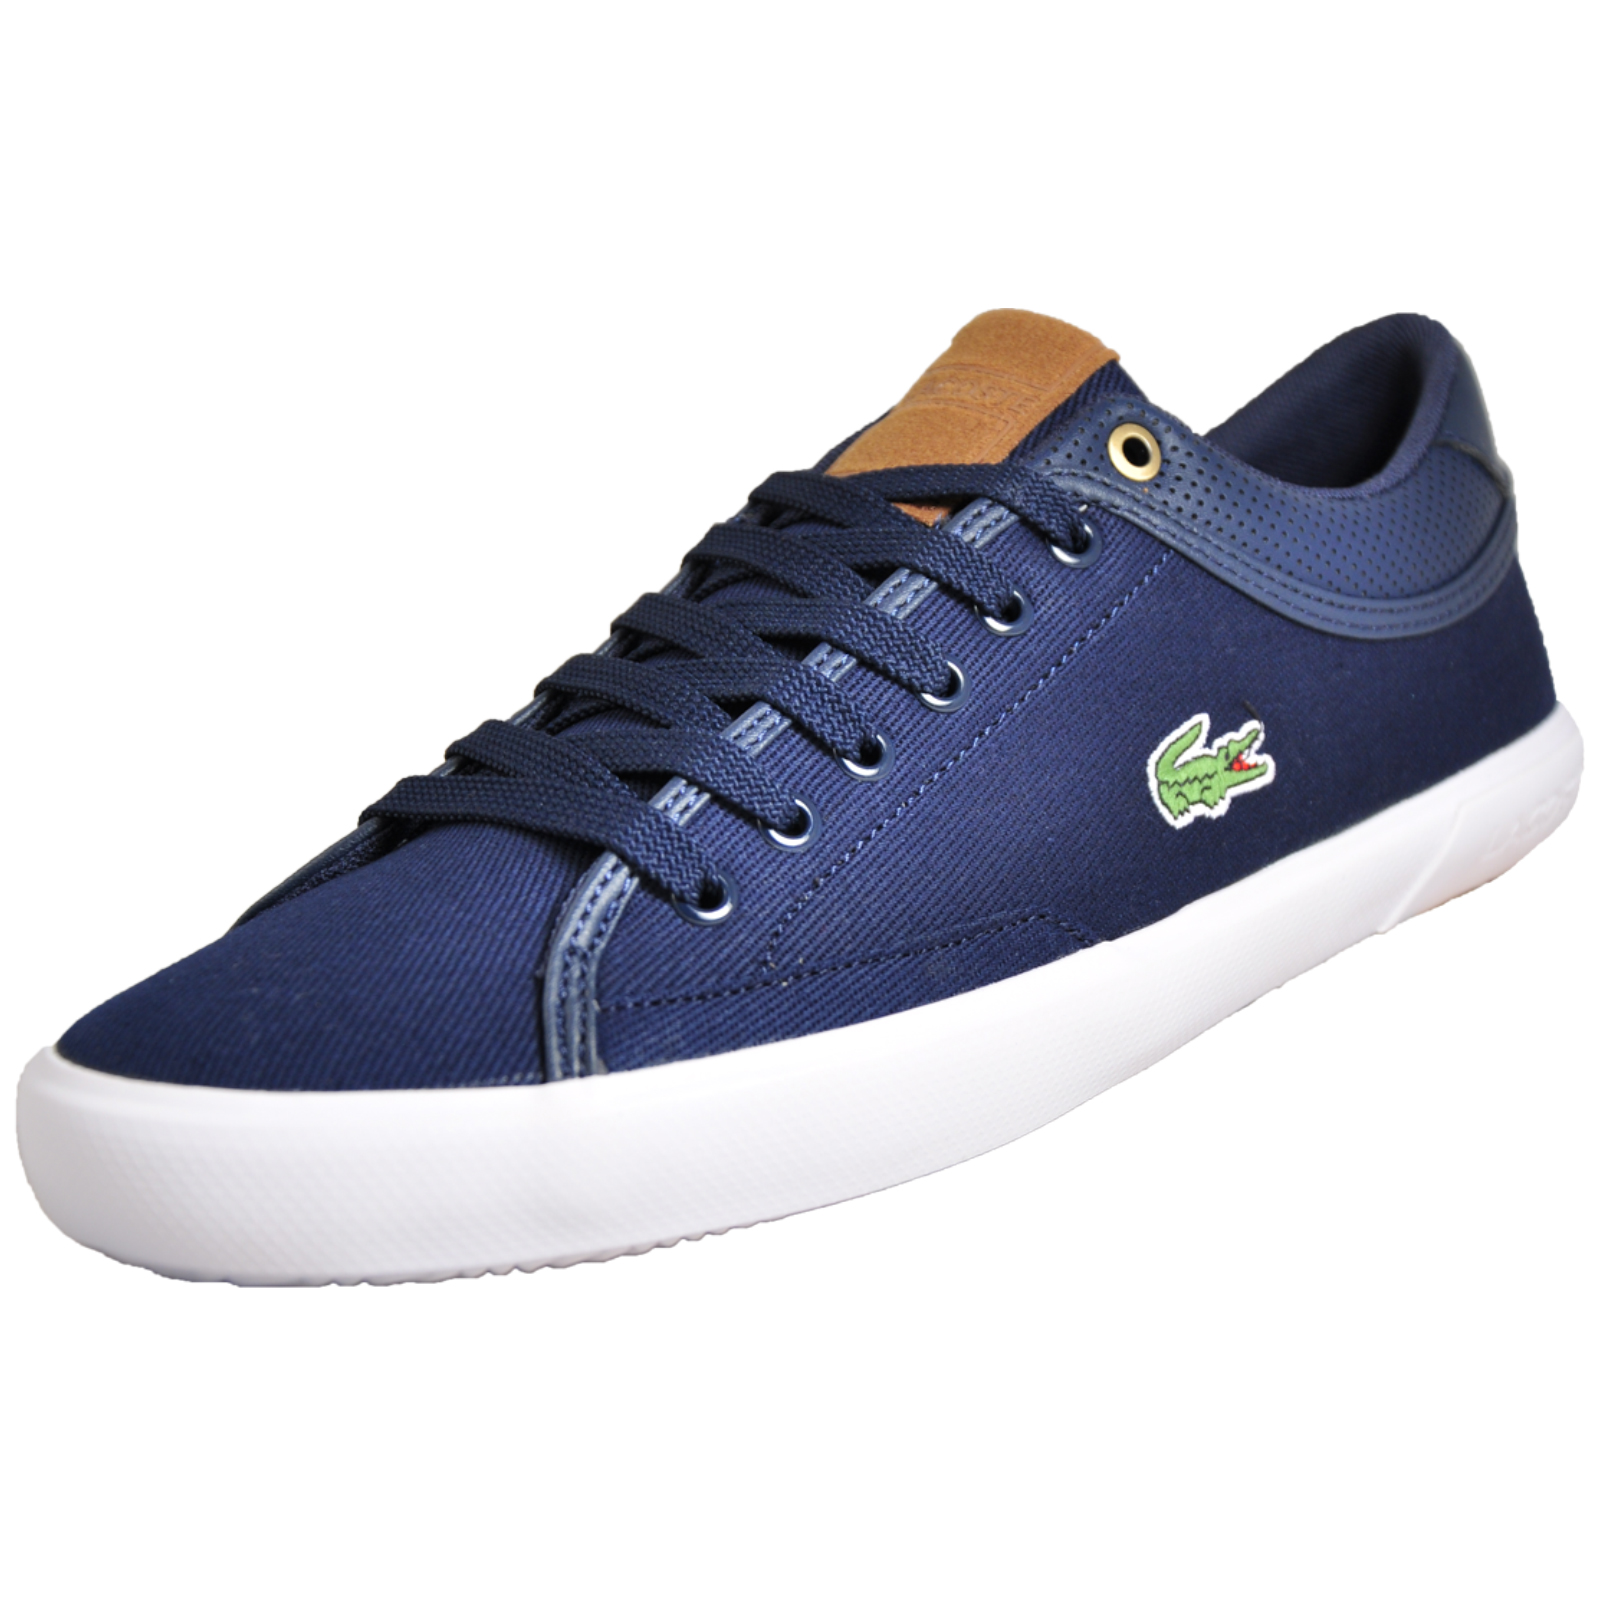 5b5082680851 Details about Lacoste Angha 218 Men s Classic Casual Designer Plimsol Trainers  Navy B Grade